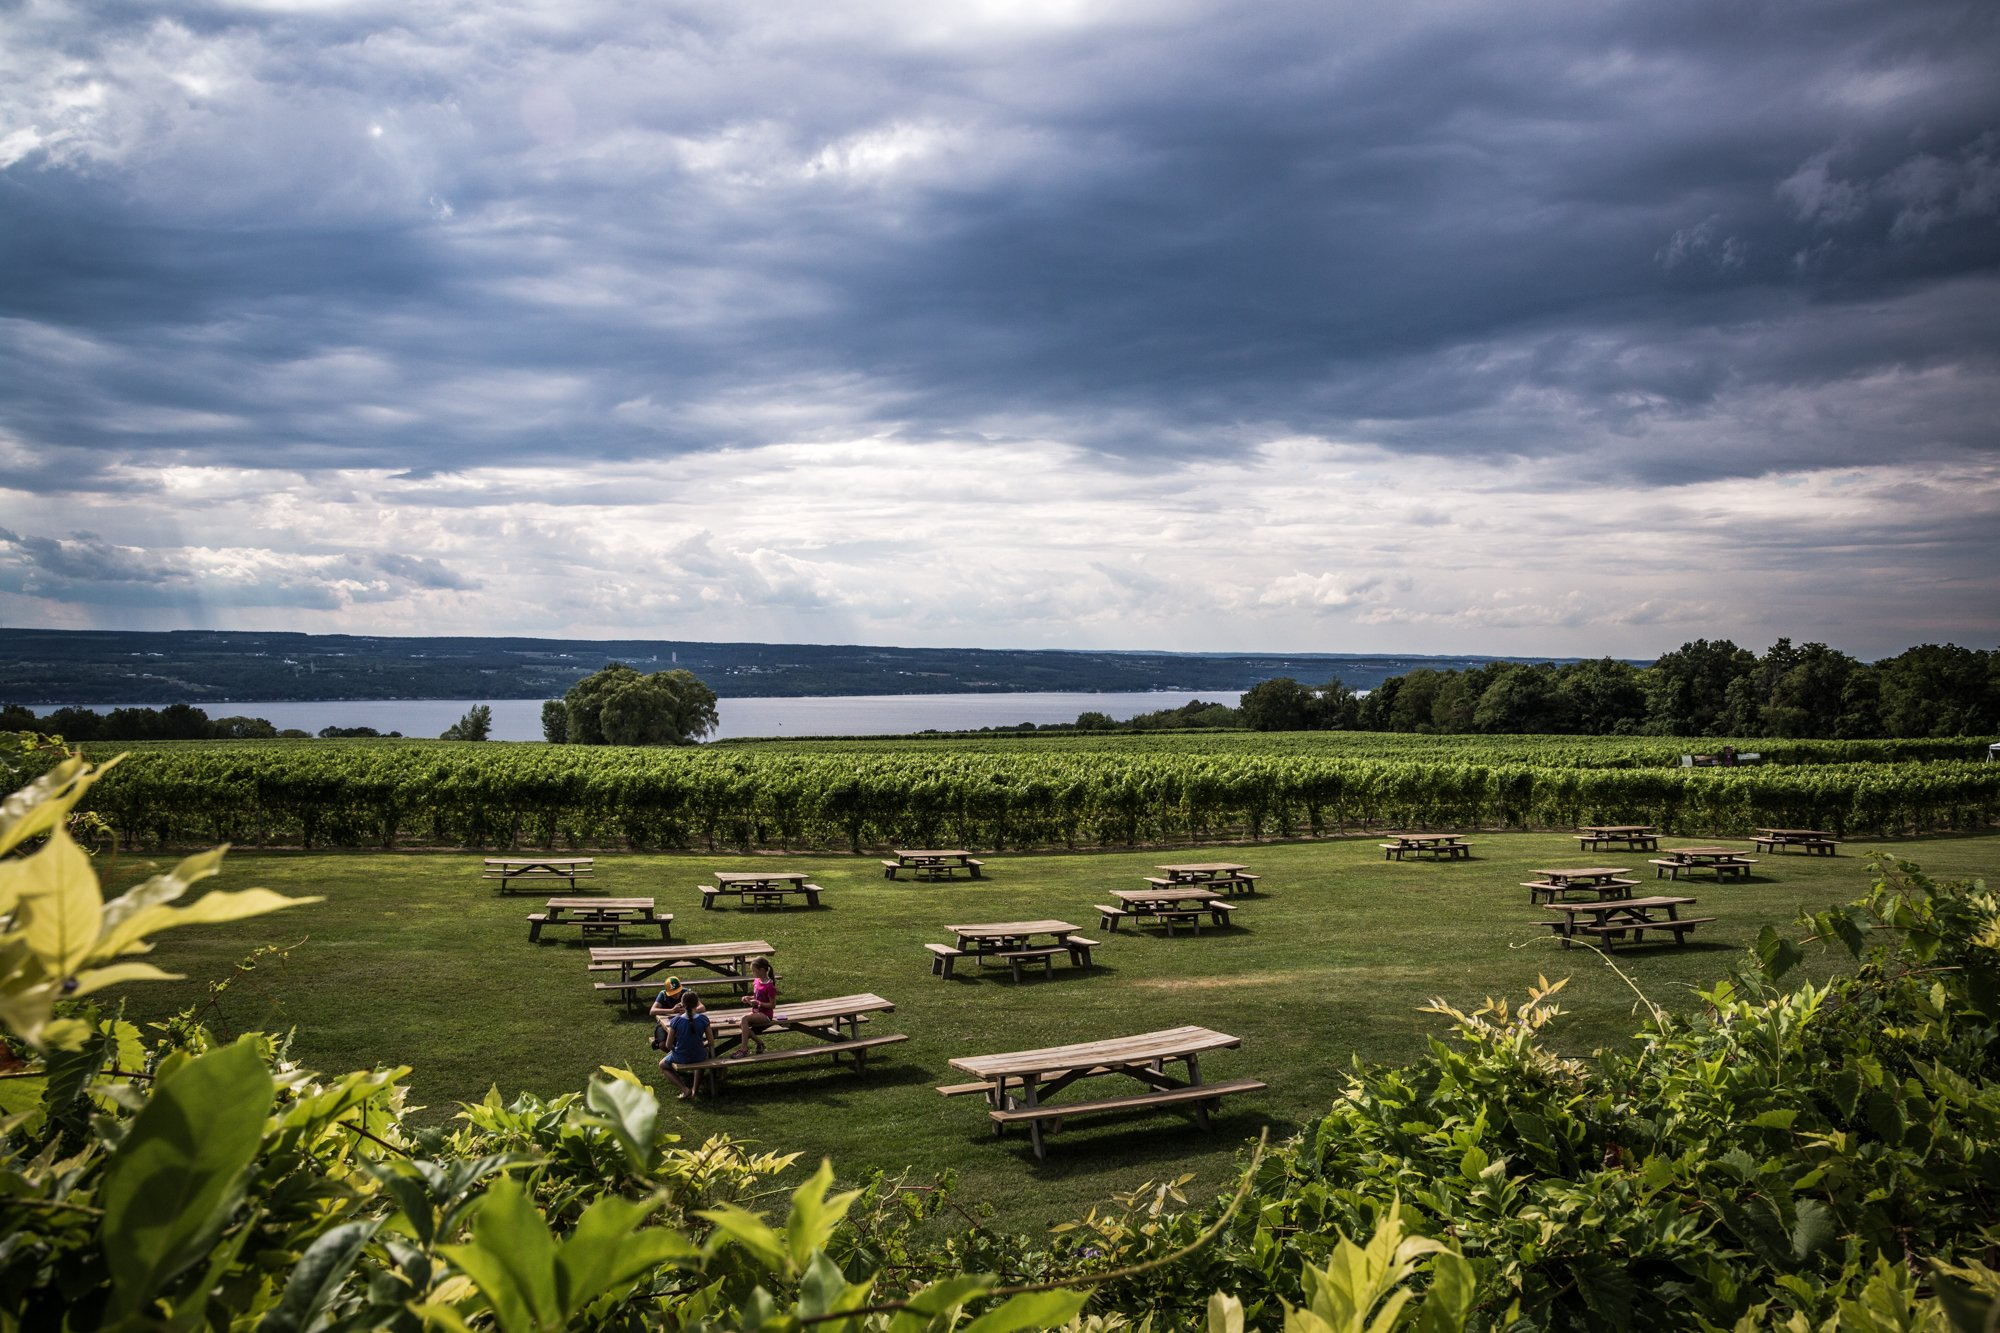 Picnic Tables at Wagner Vineyard with a view of Seneca Lake in the Finger Lakes AVA of New York State